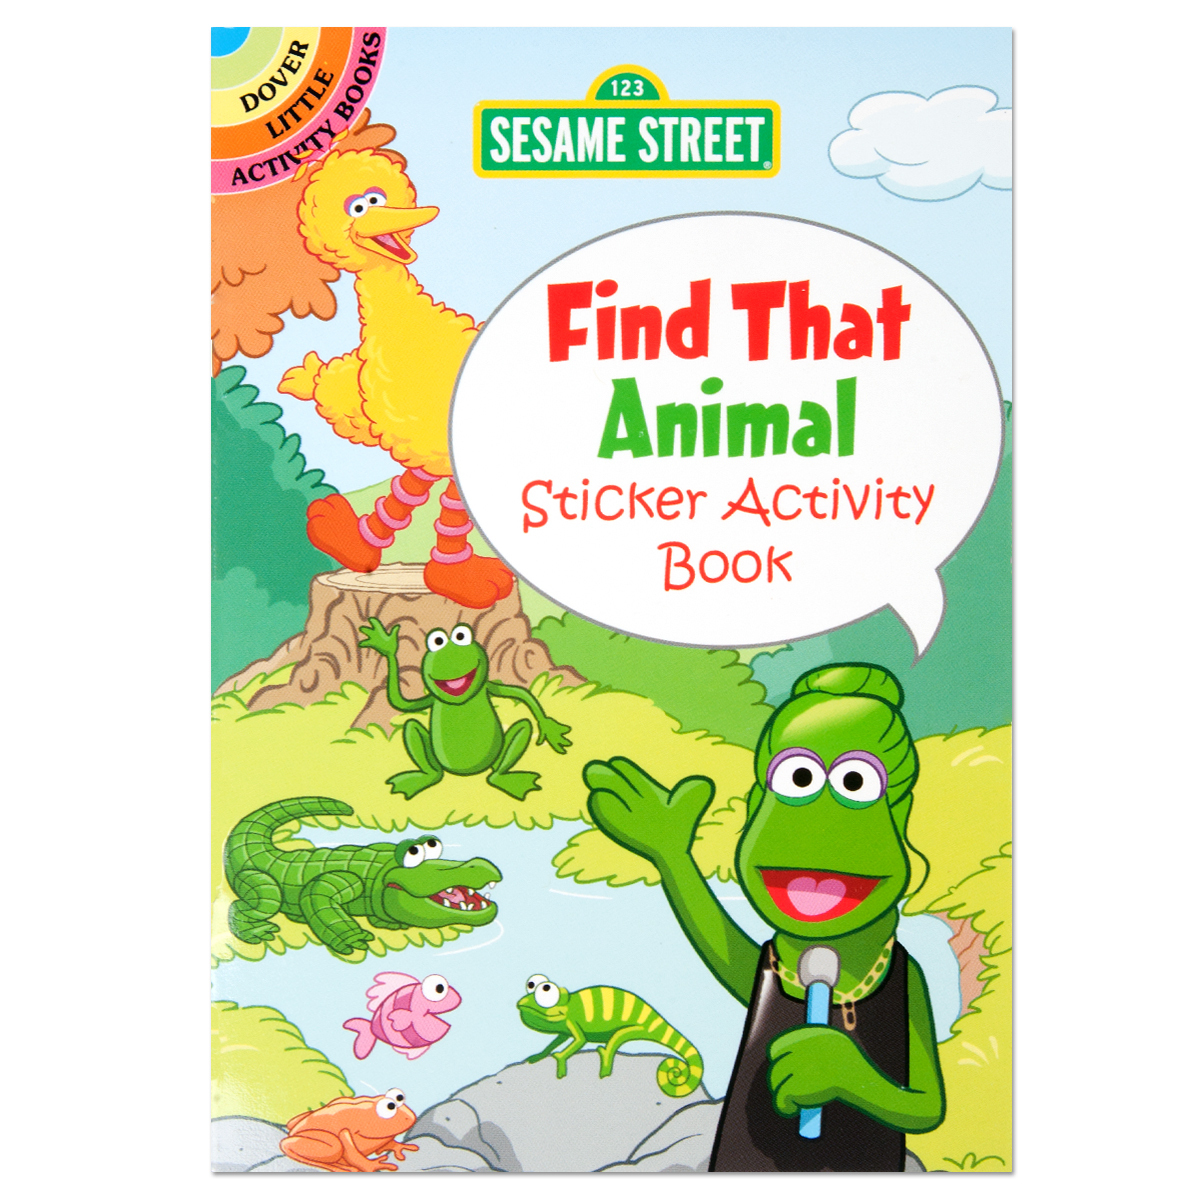 Sesame Street: Find That Animal Sticker Activity Book